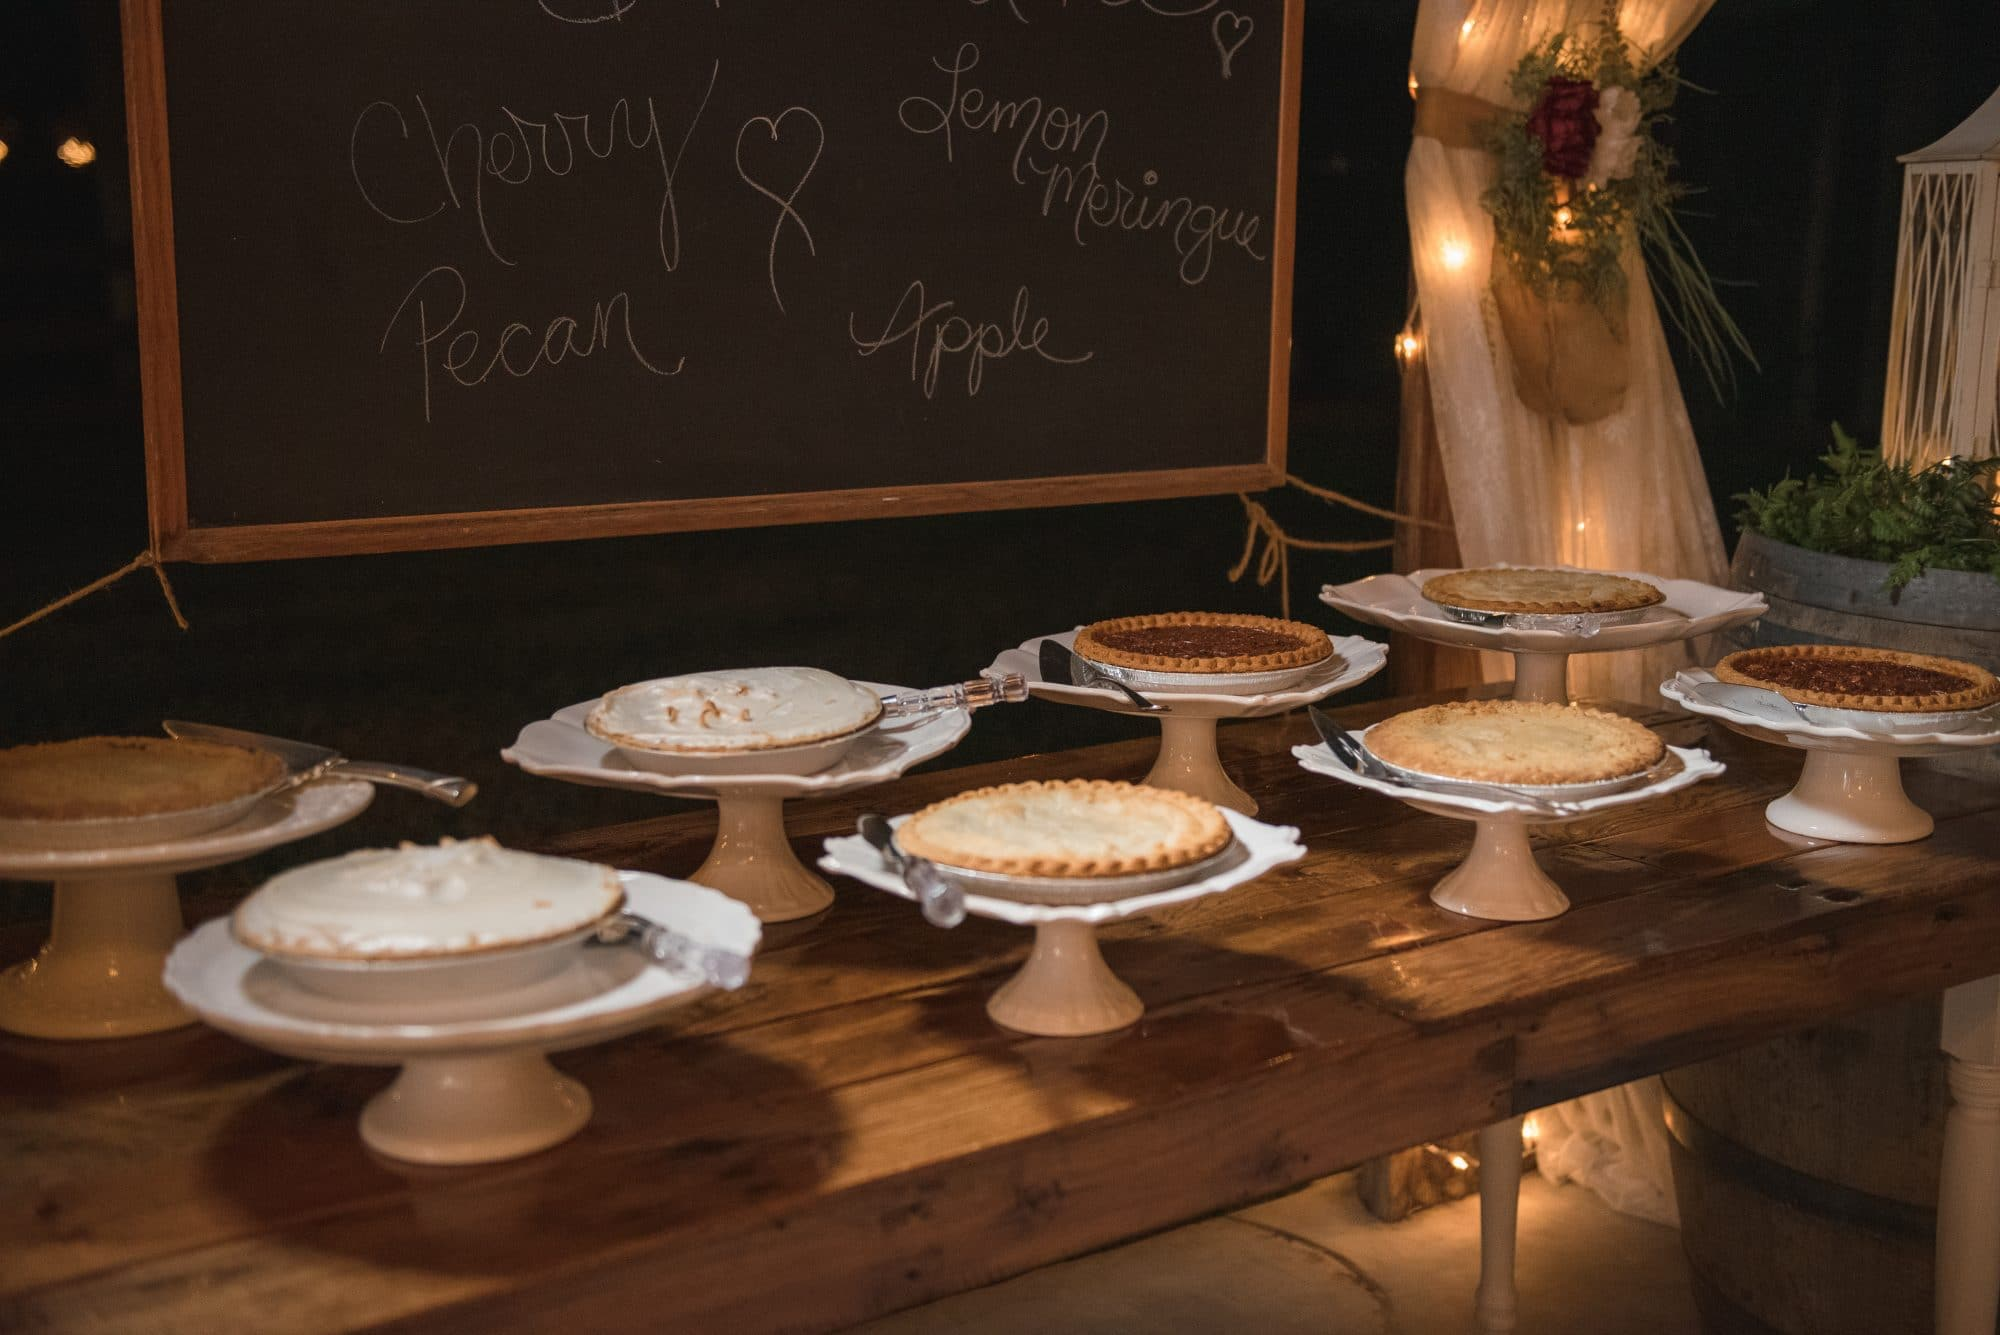 Selection of pies on dessert table.